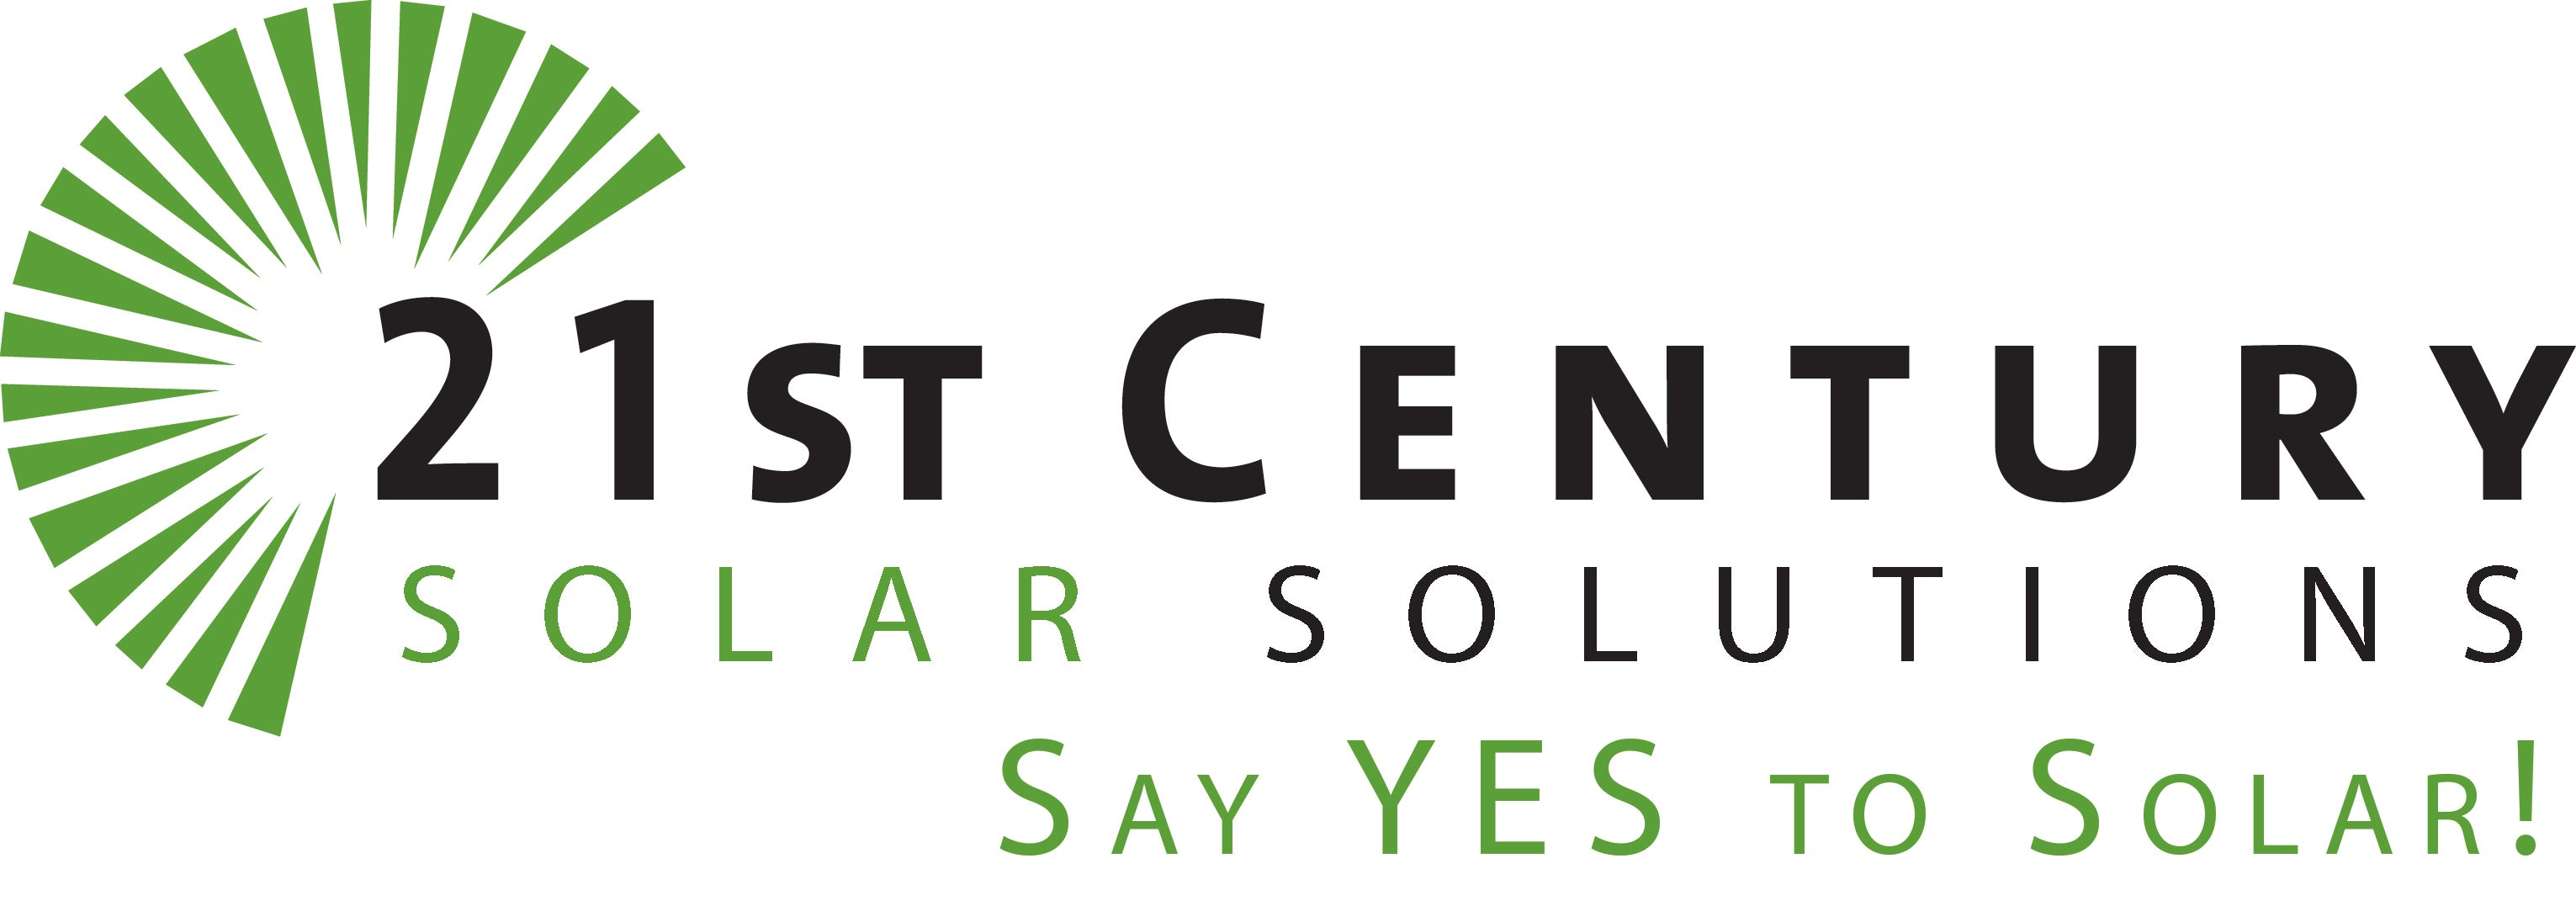 21st Century Power Solutions, LLC